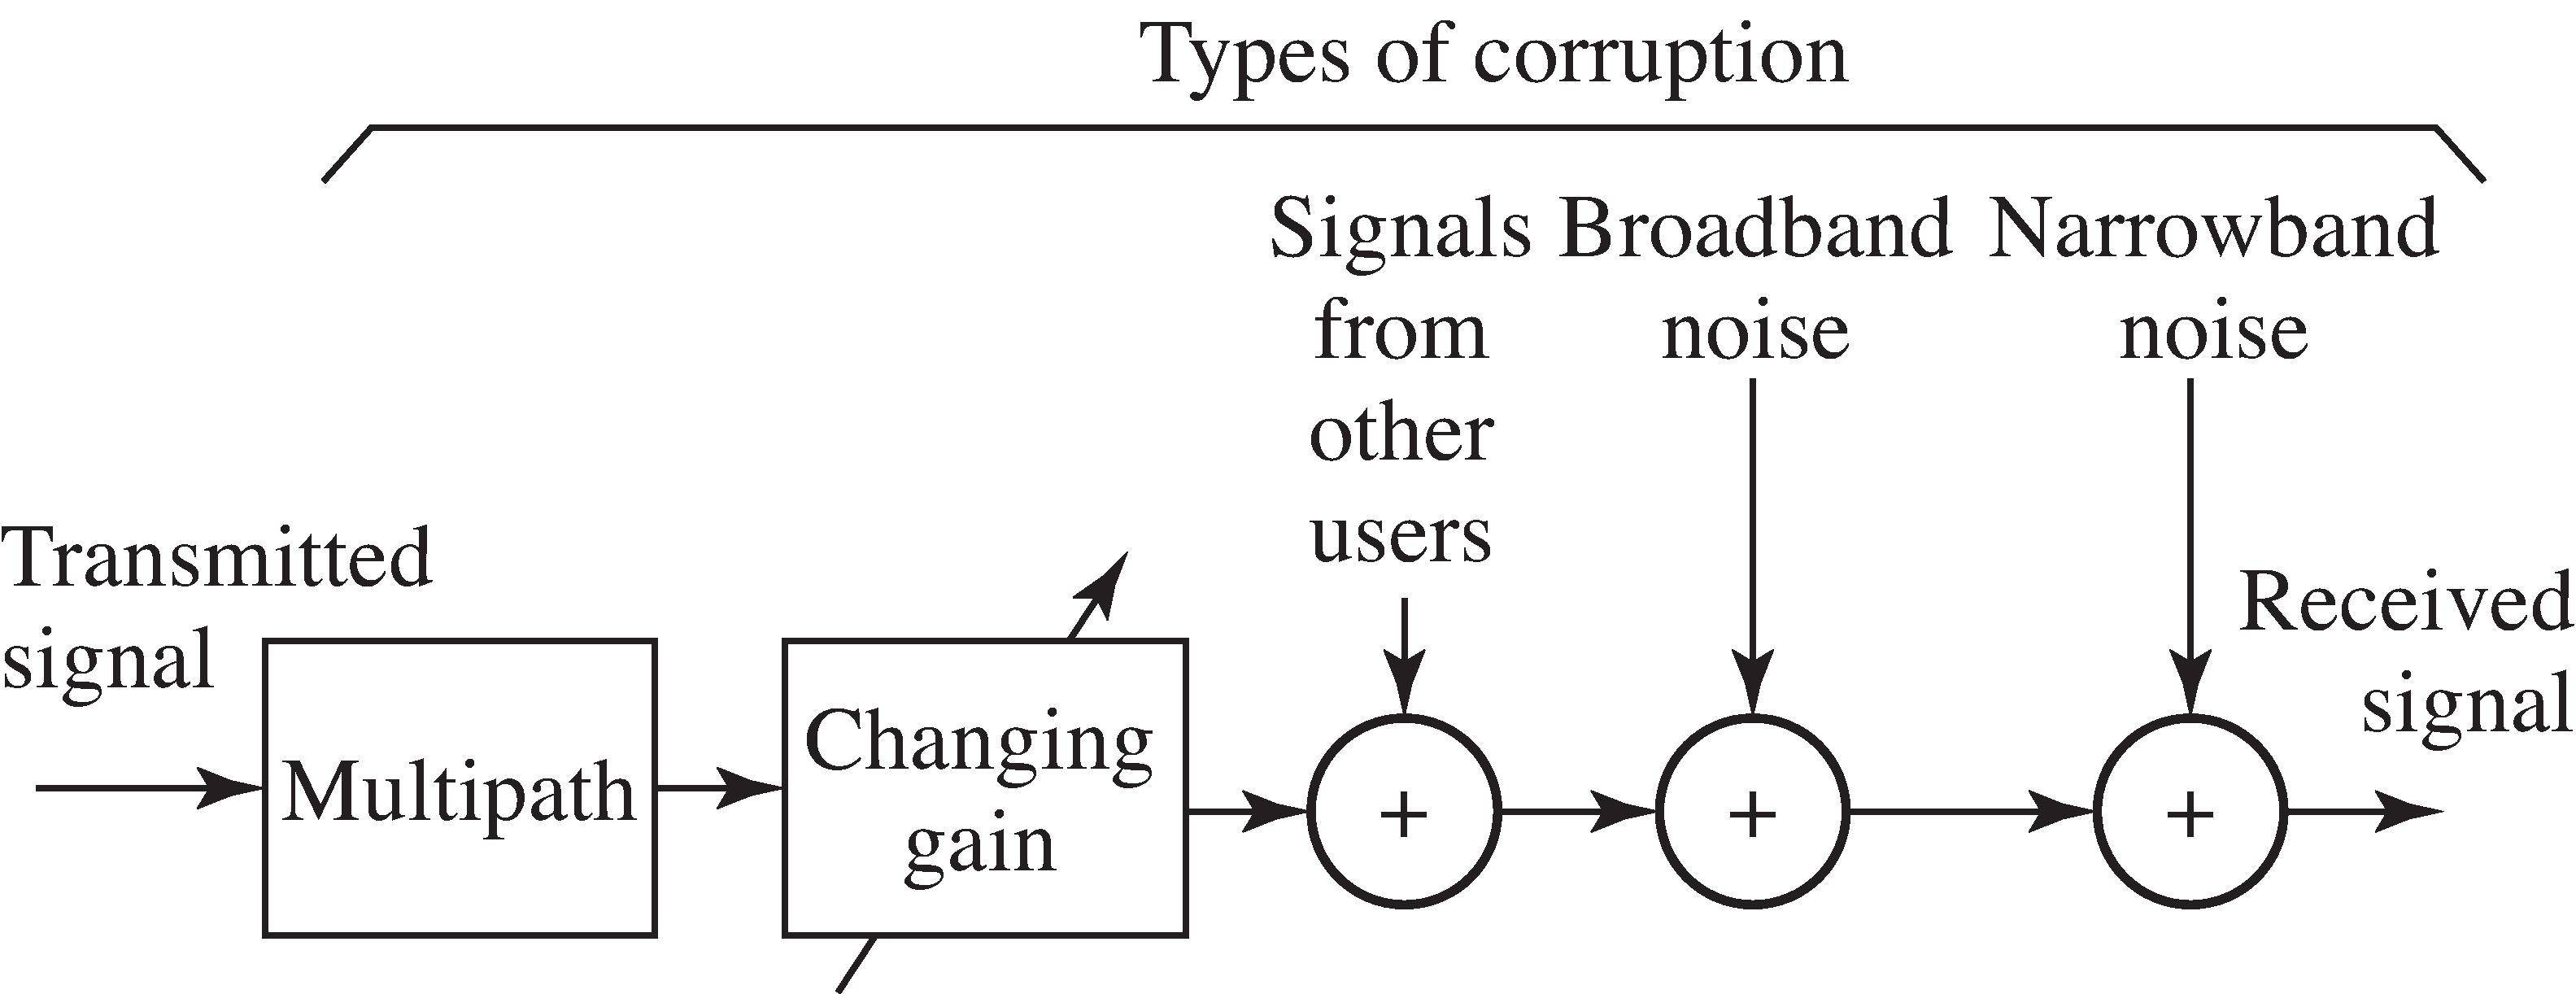 Sources of corruption include multipath interference, changing channel gains, interference from other users, broadband noise, and narrowband interferences.